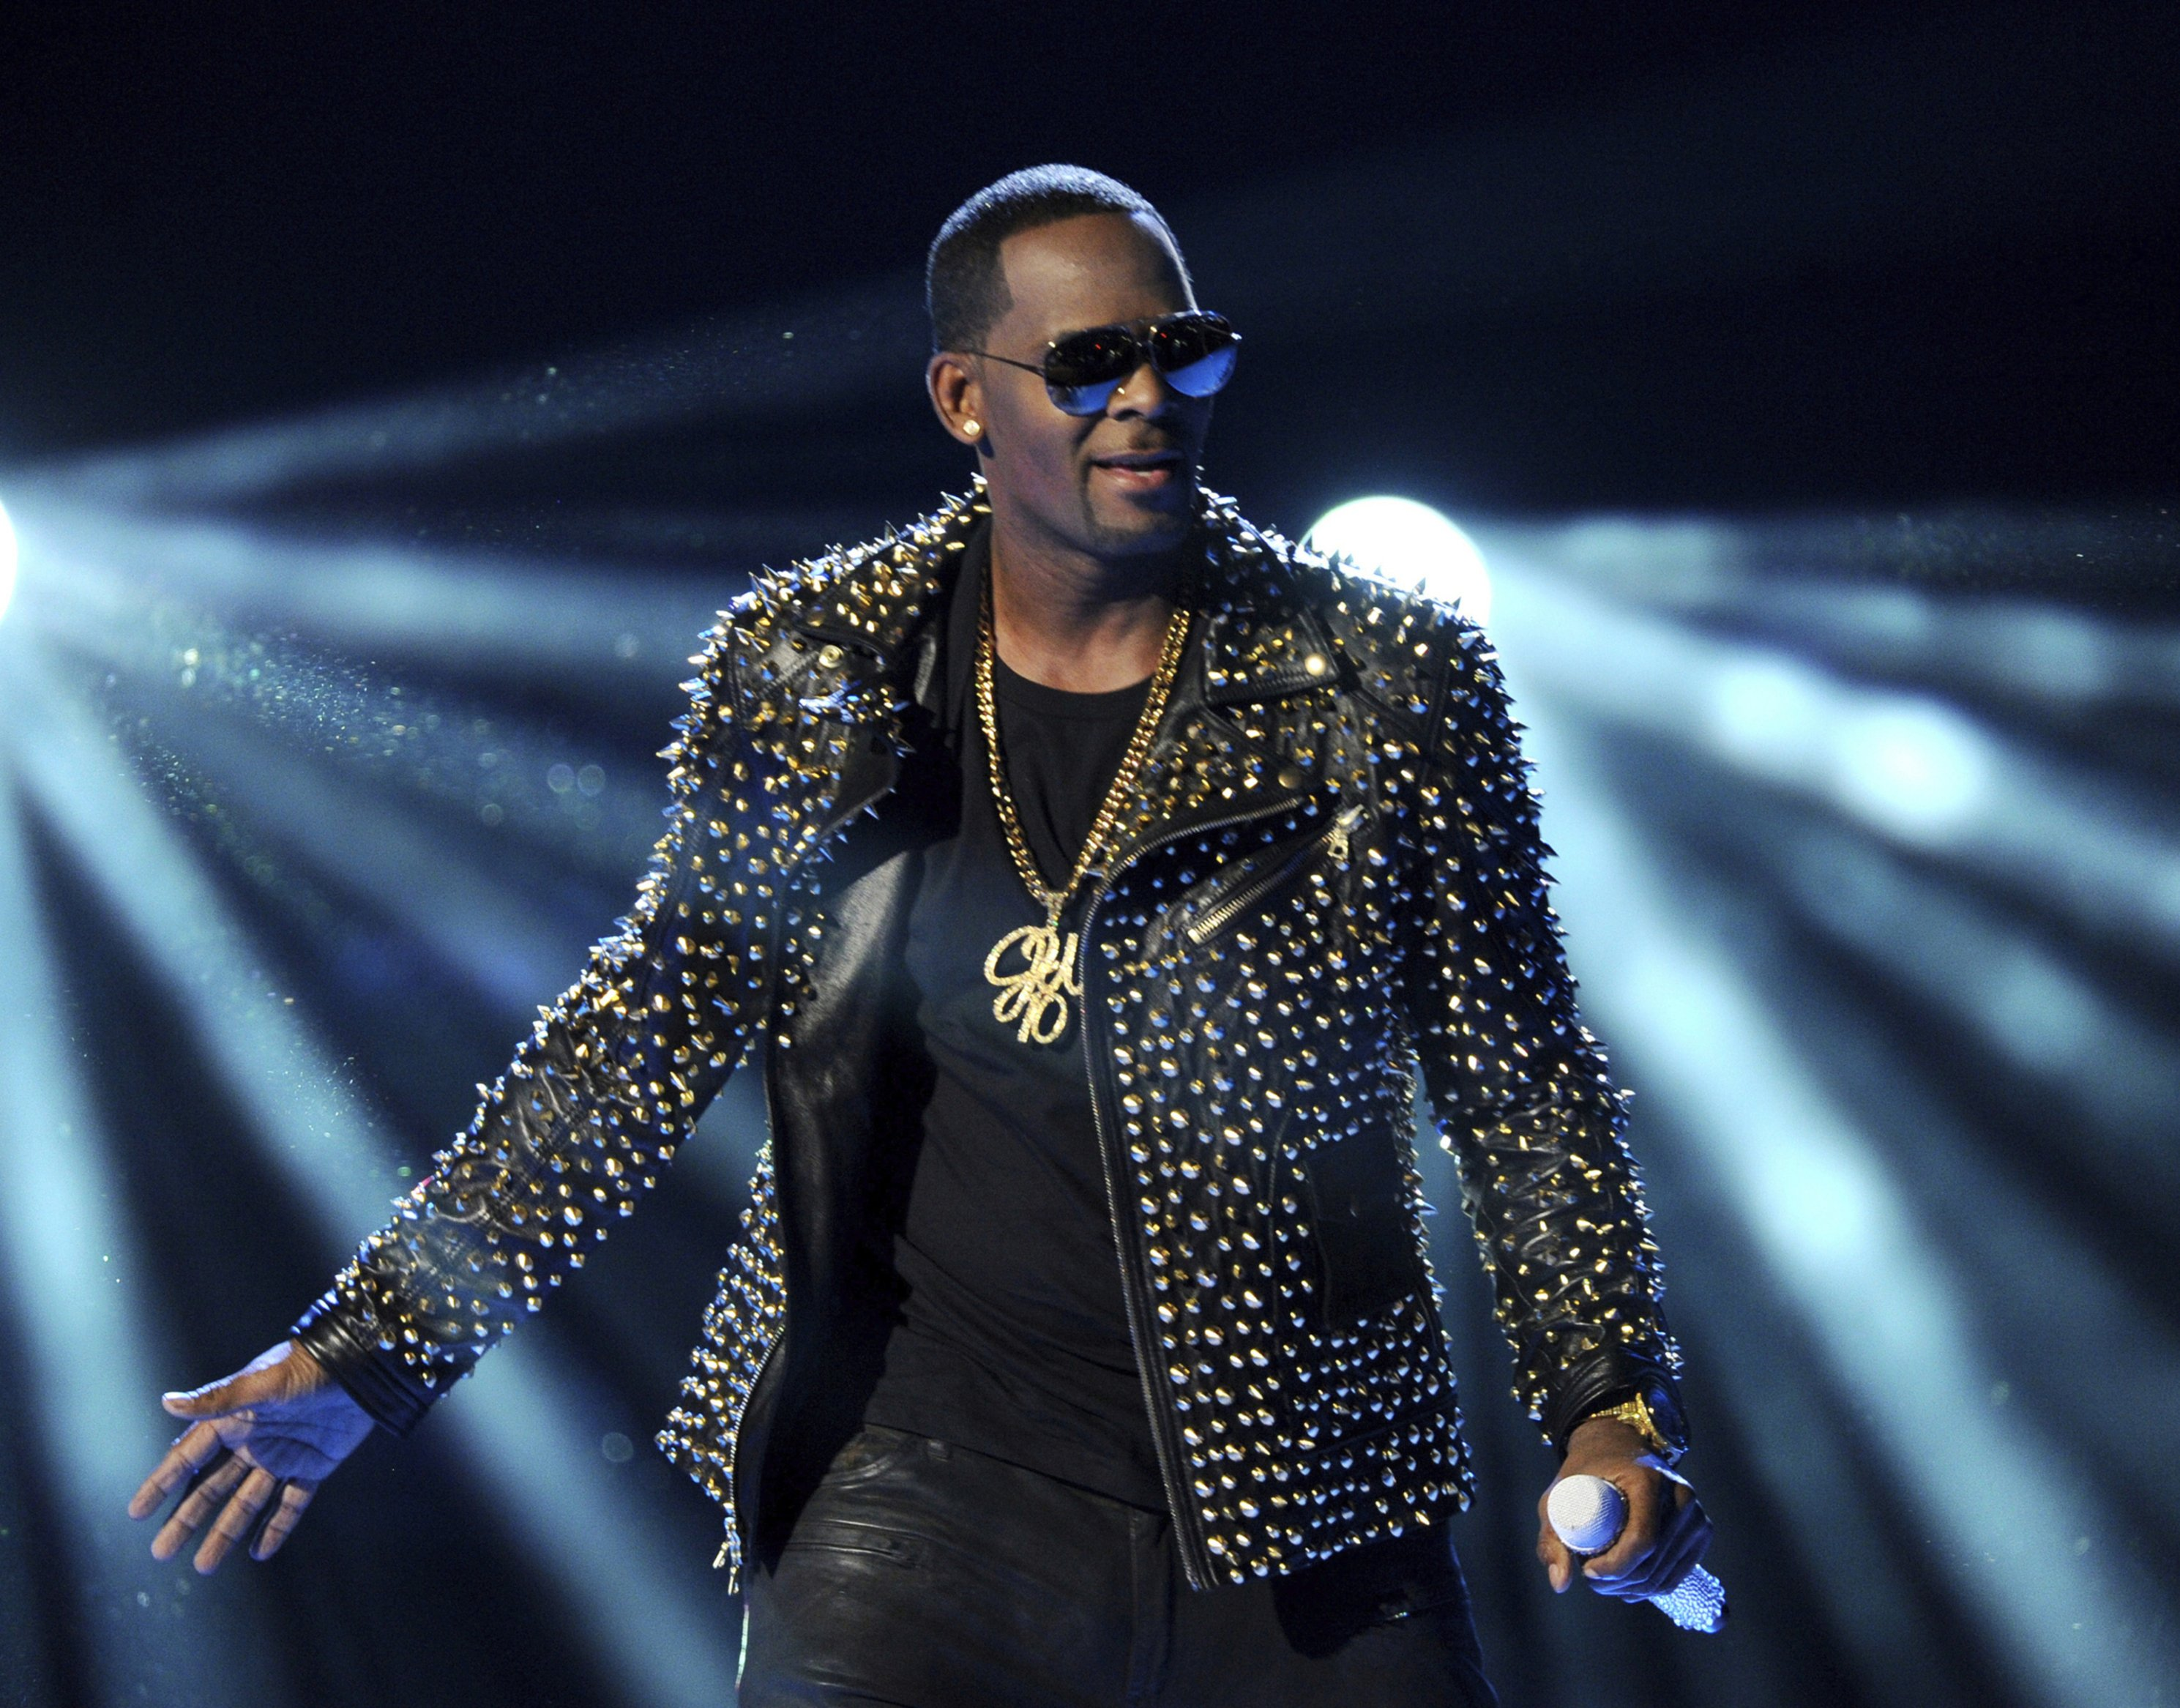 Citing cash woes, R Kelly asks judge for OK to fly to Dubai - The Associated Press thumbnail